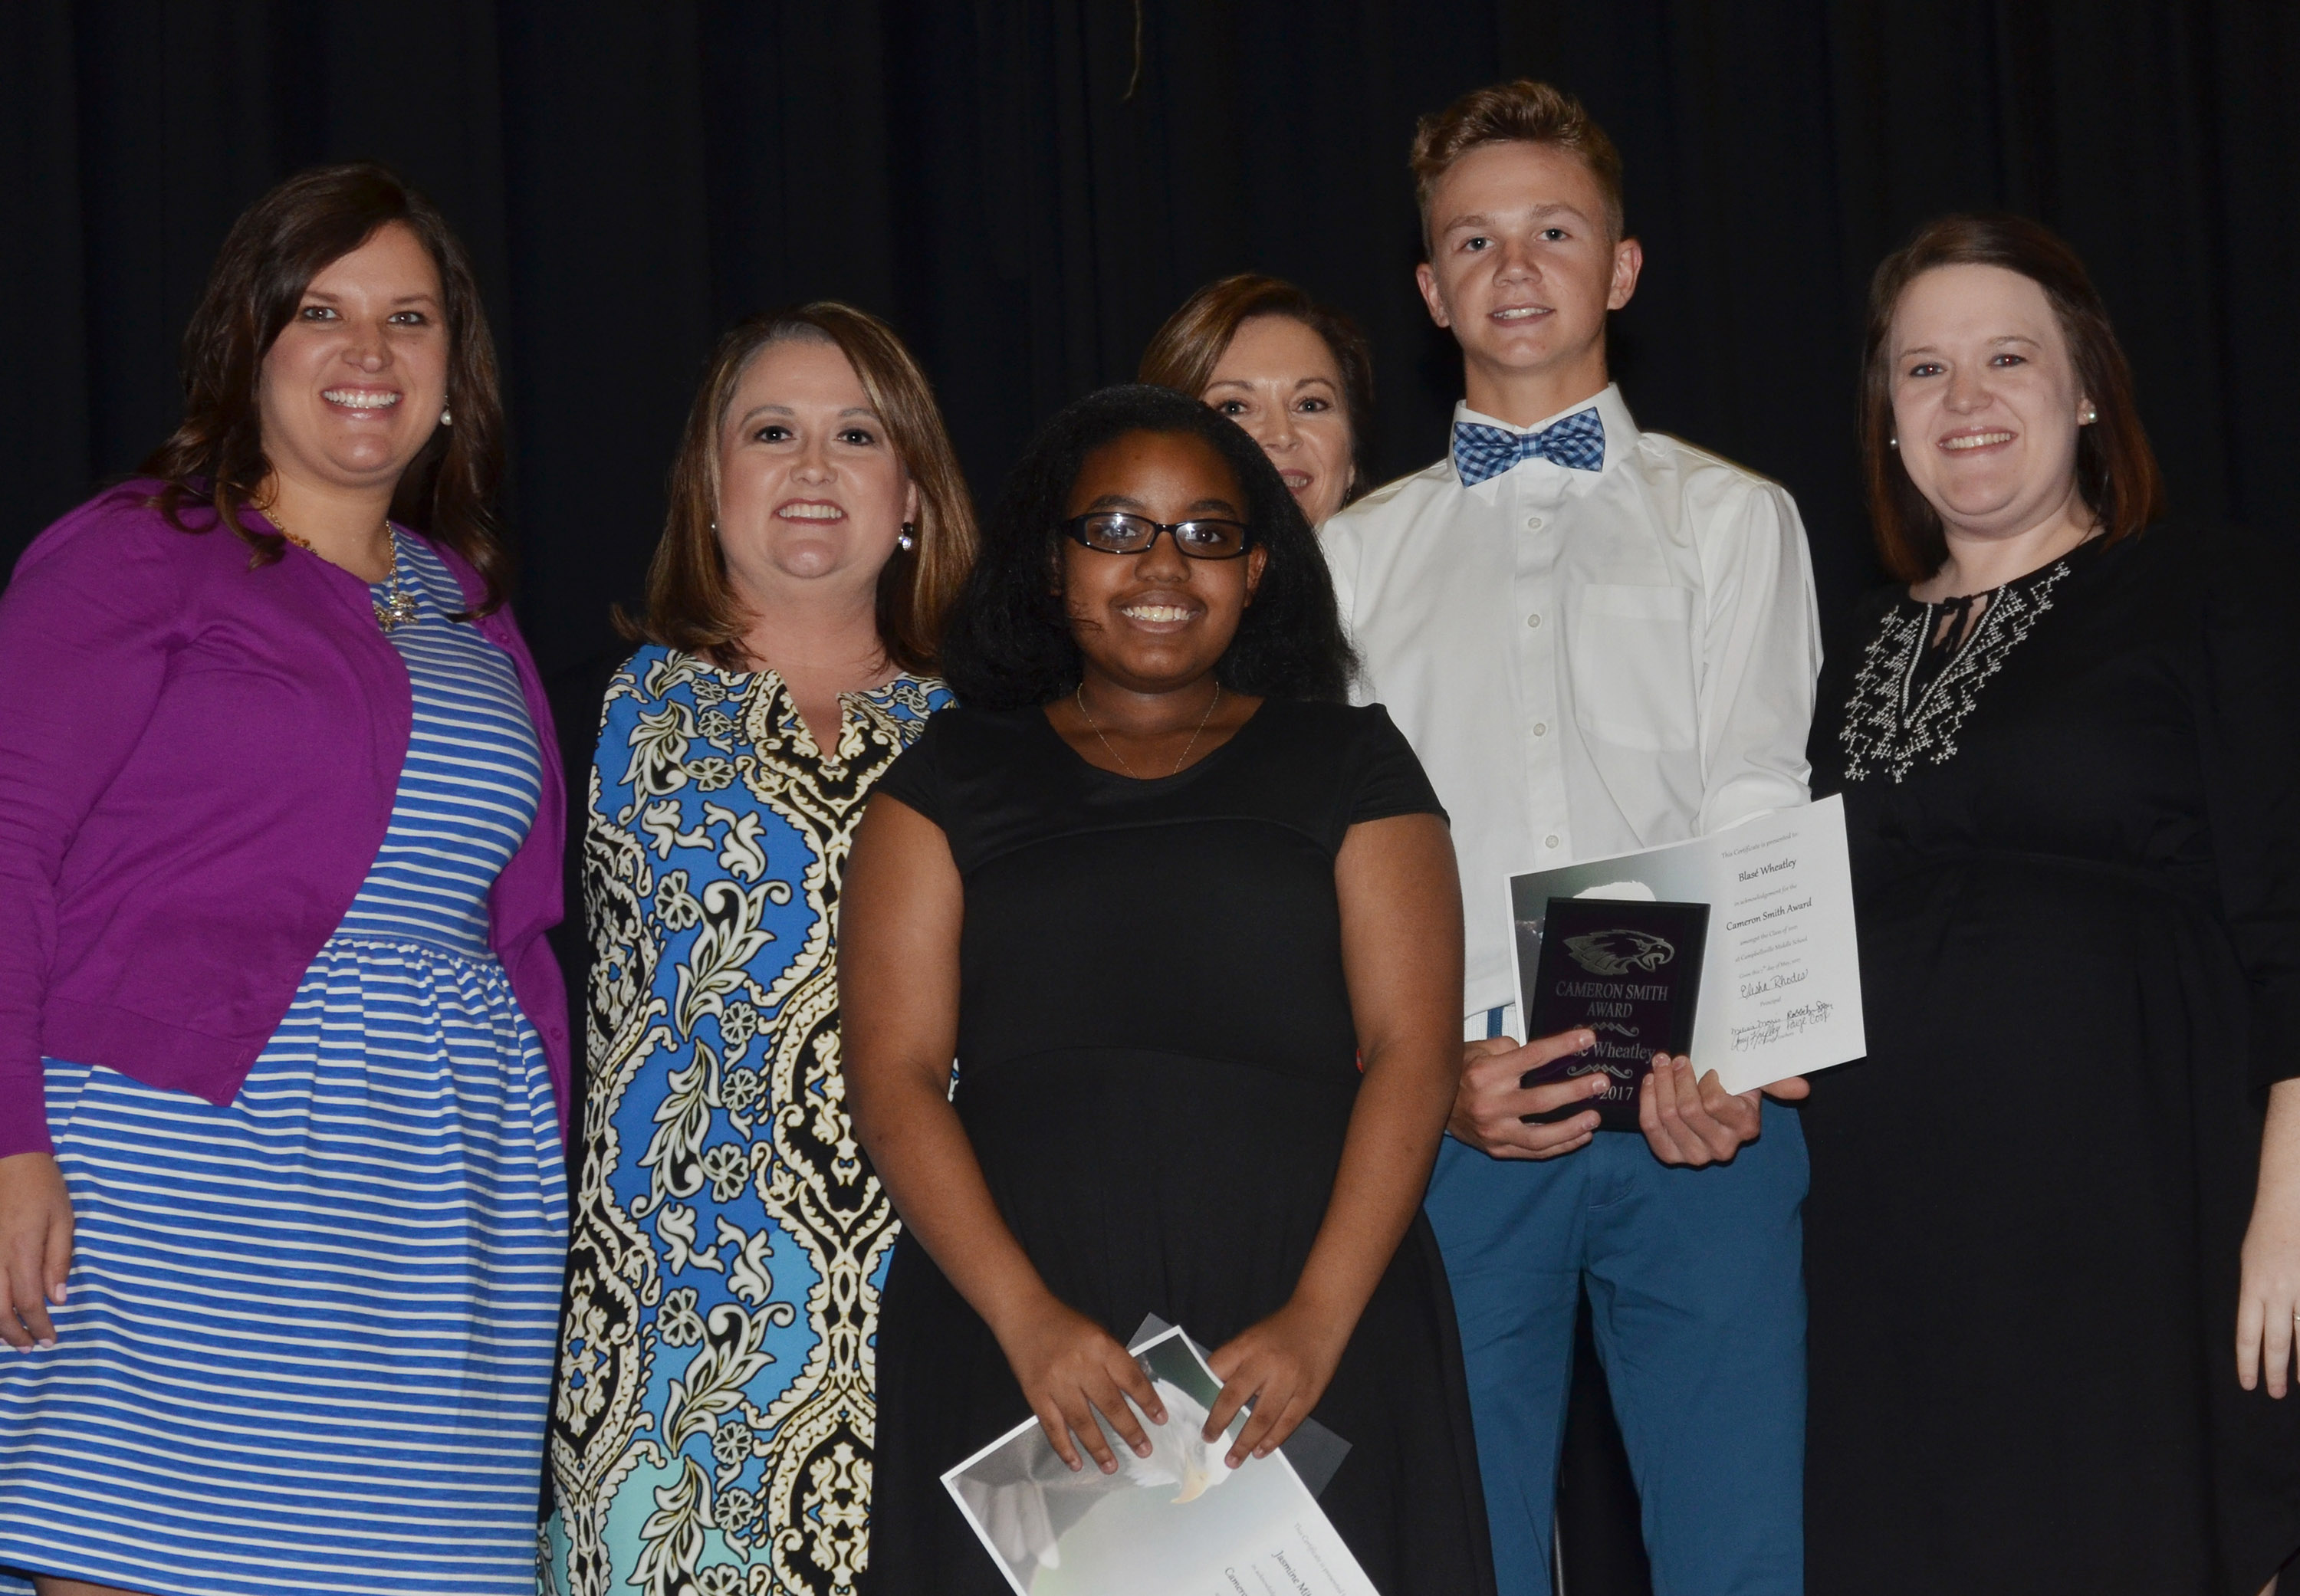 CMS eighth-graders Jasmine Mitchell and Blase Wheatley receive the Cameron Smith awards from teachers, from left, Robbilyn Speer, Amy Knifley, Melisa Morris and Paige Cook.